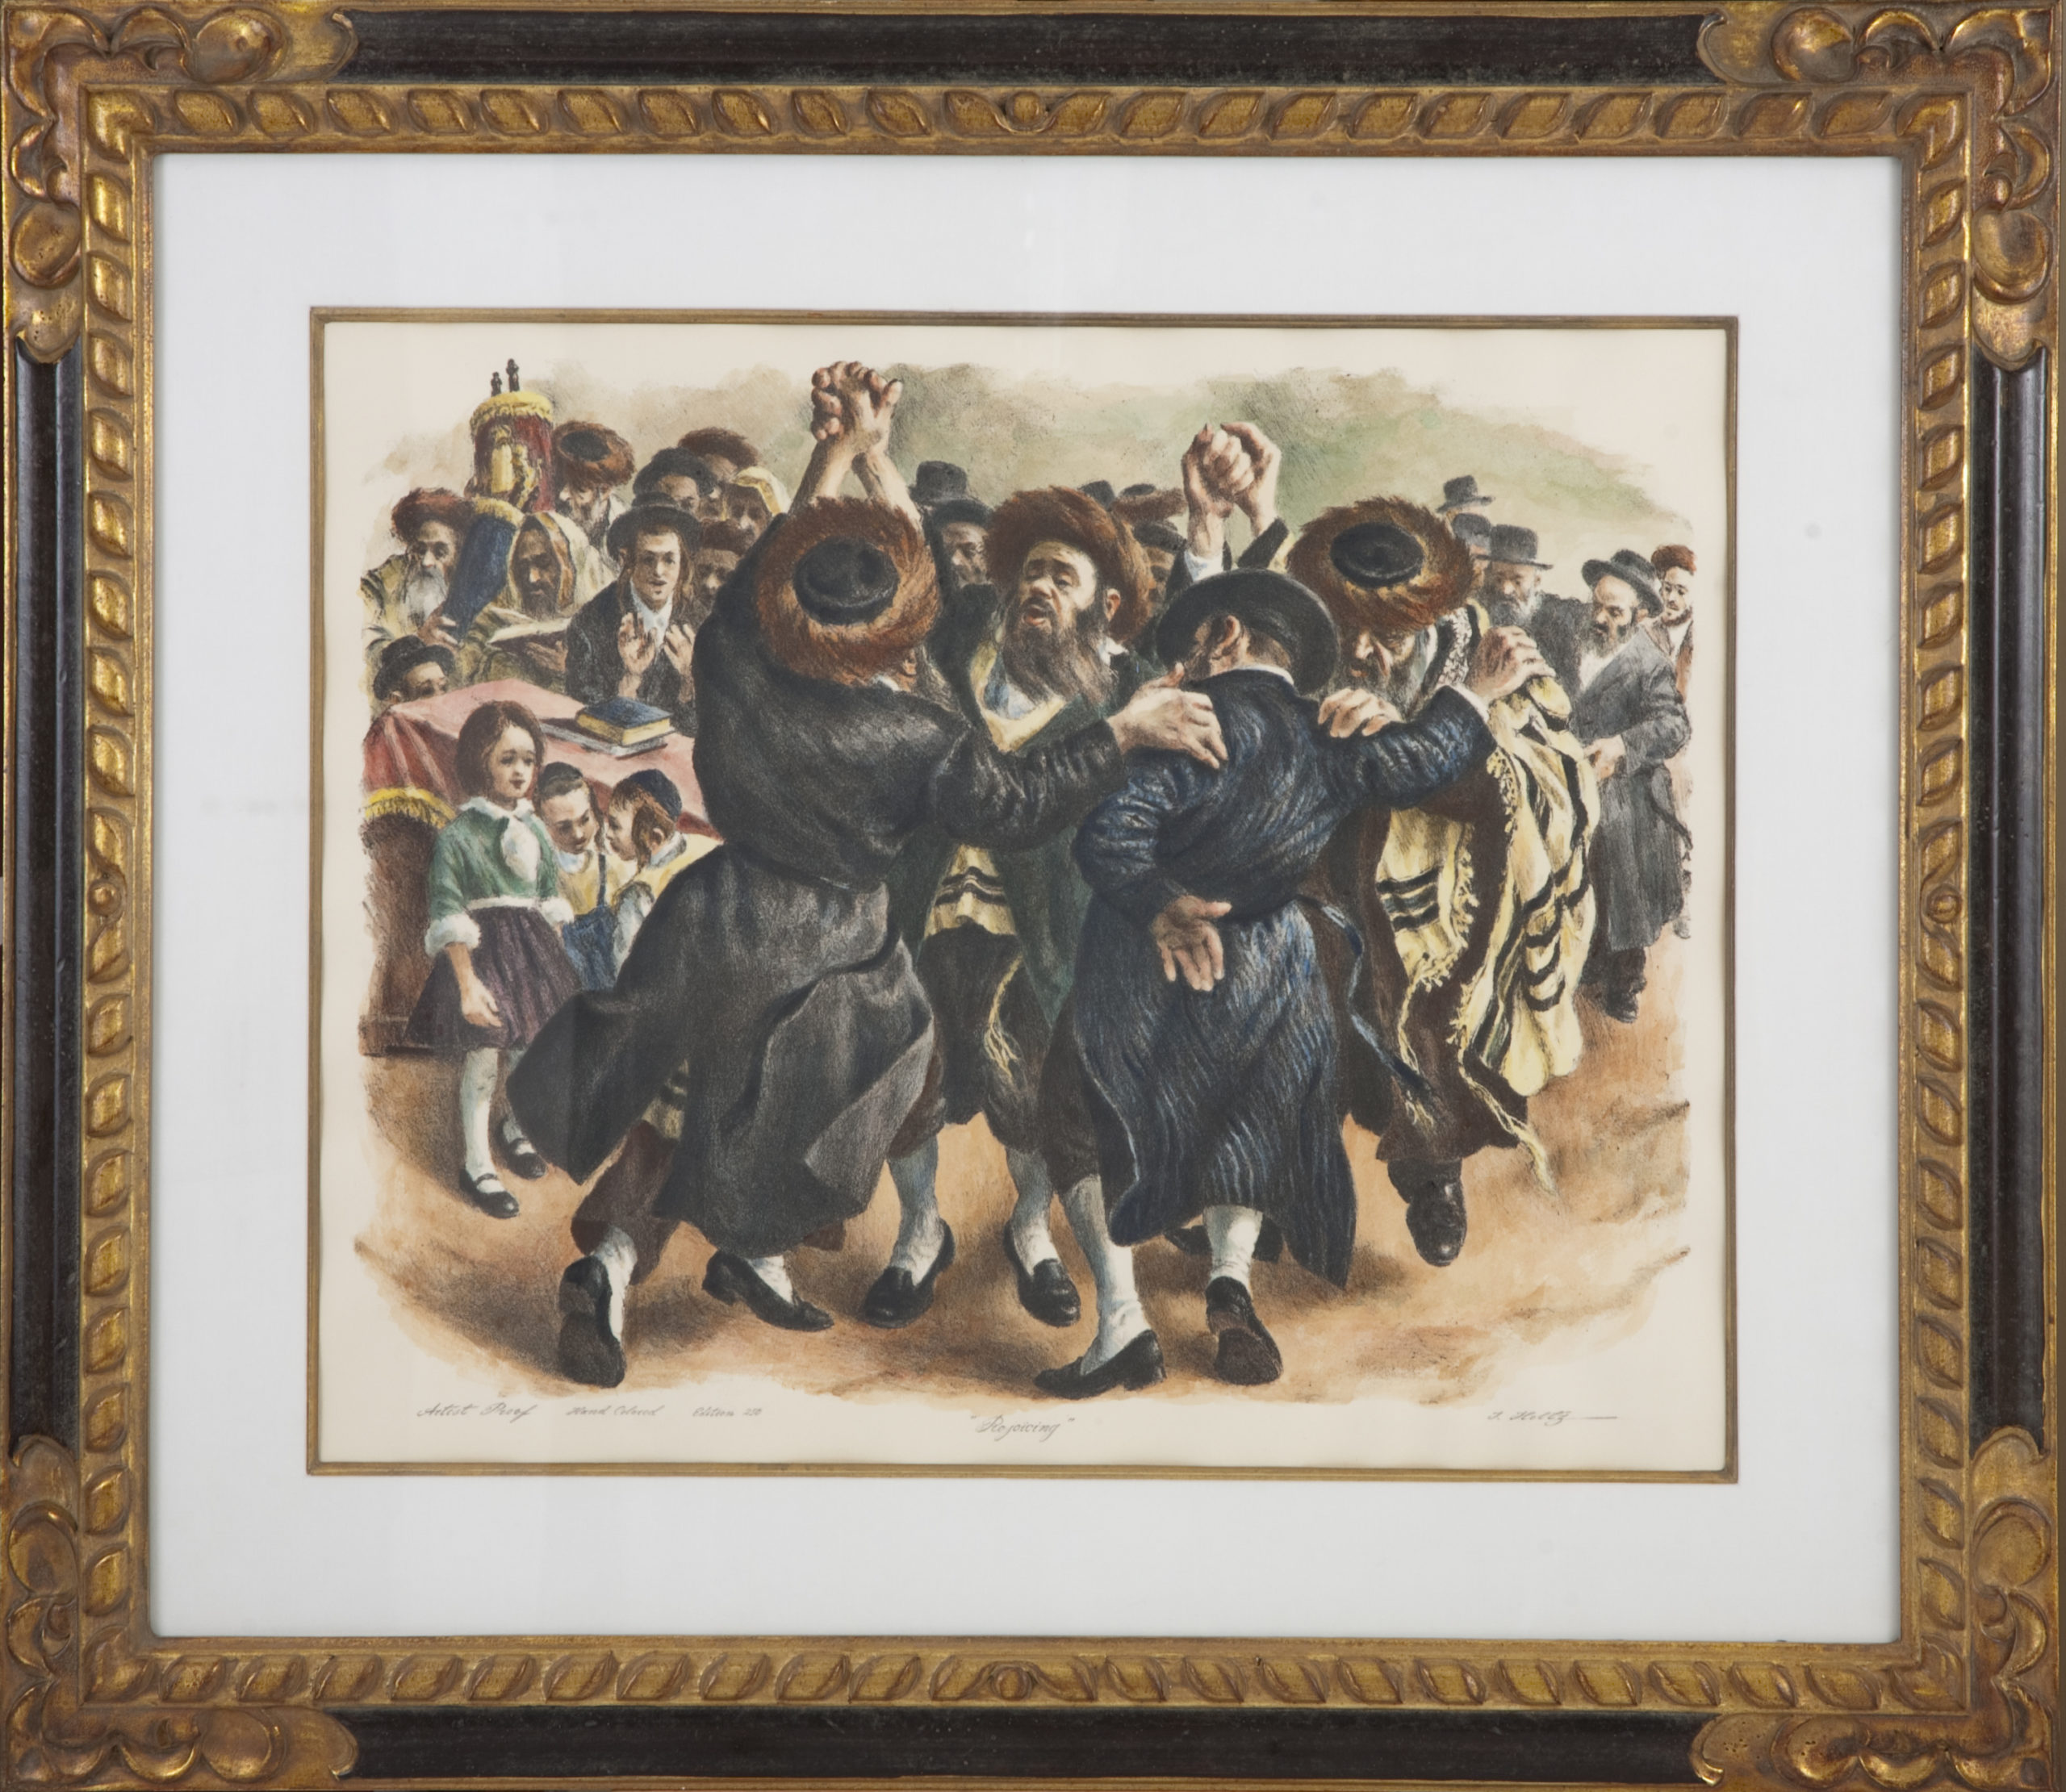 L11 SOLD Rejoicing 1974 - Hand Colored - Lithograph - 37 x 31.75 - Framed